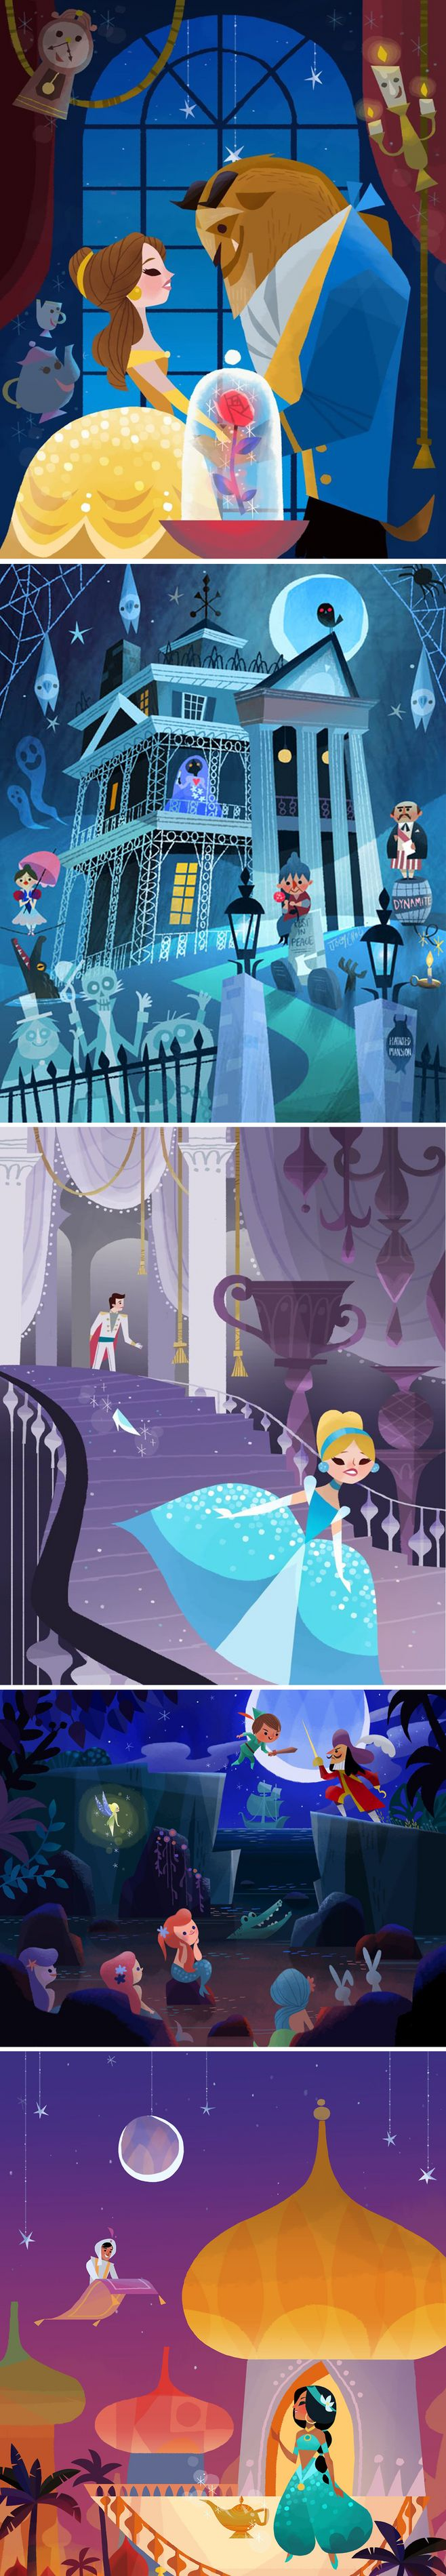 #illustrations of #Disney movies by Joey Chou